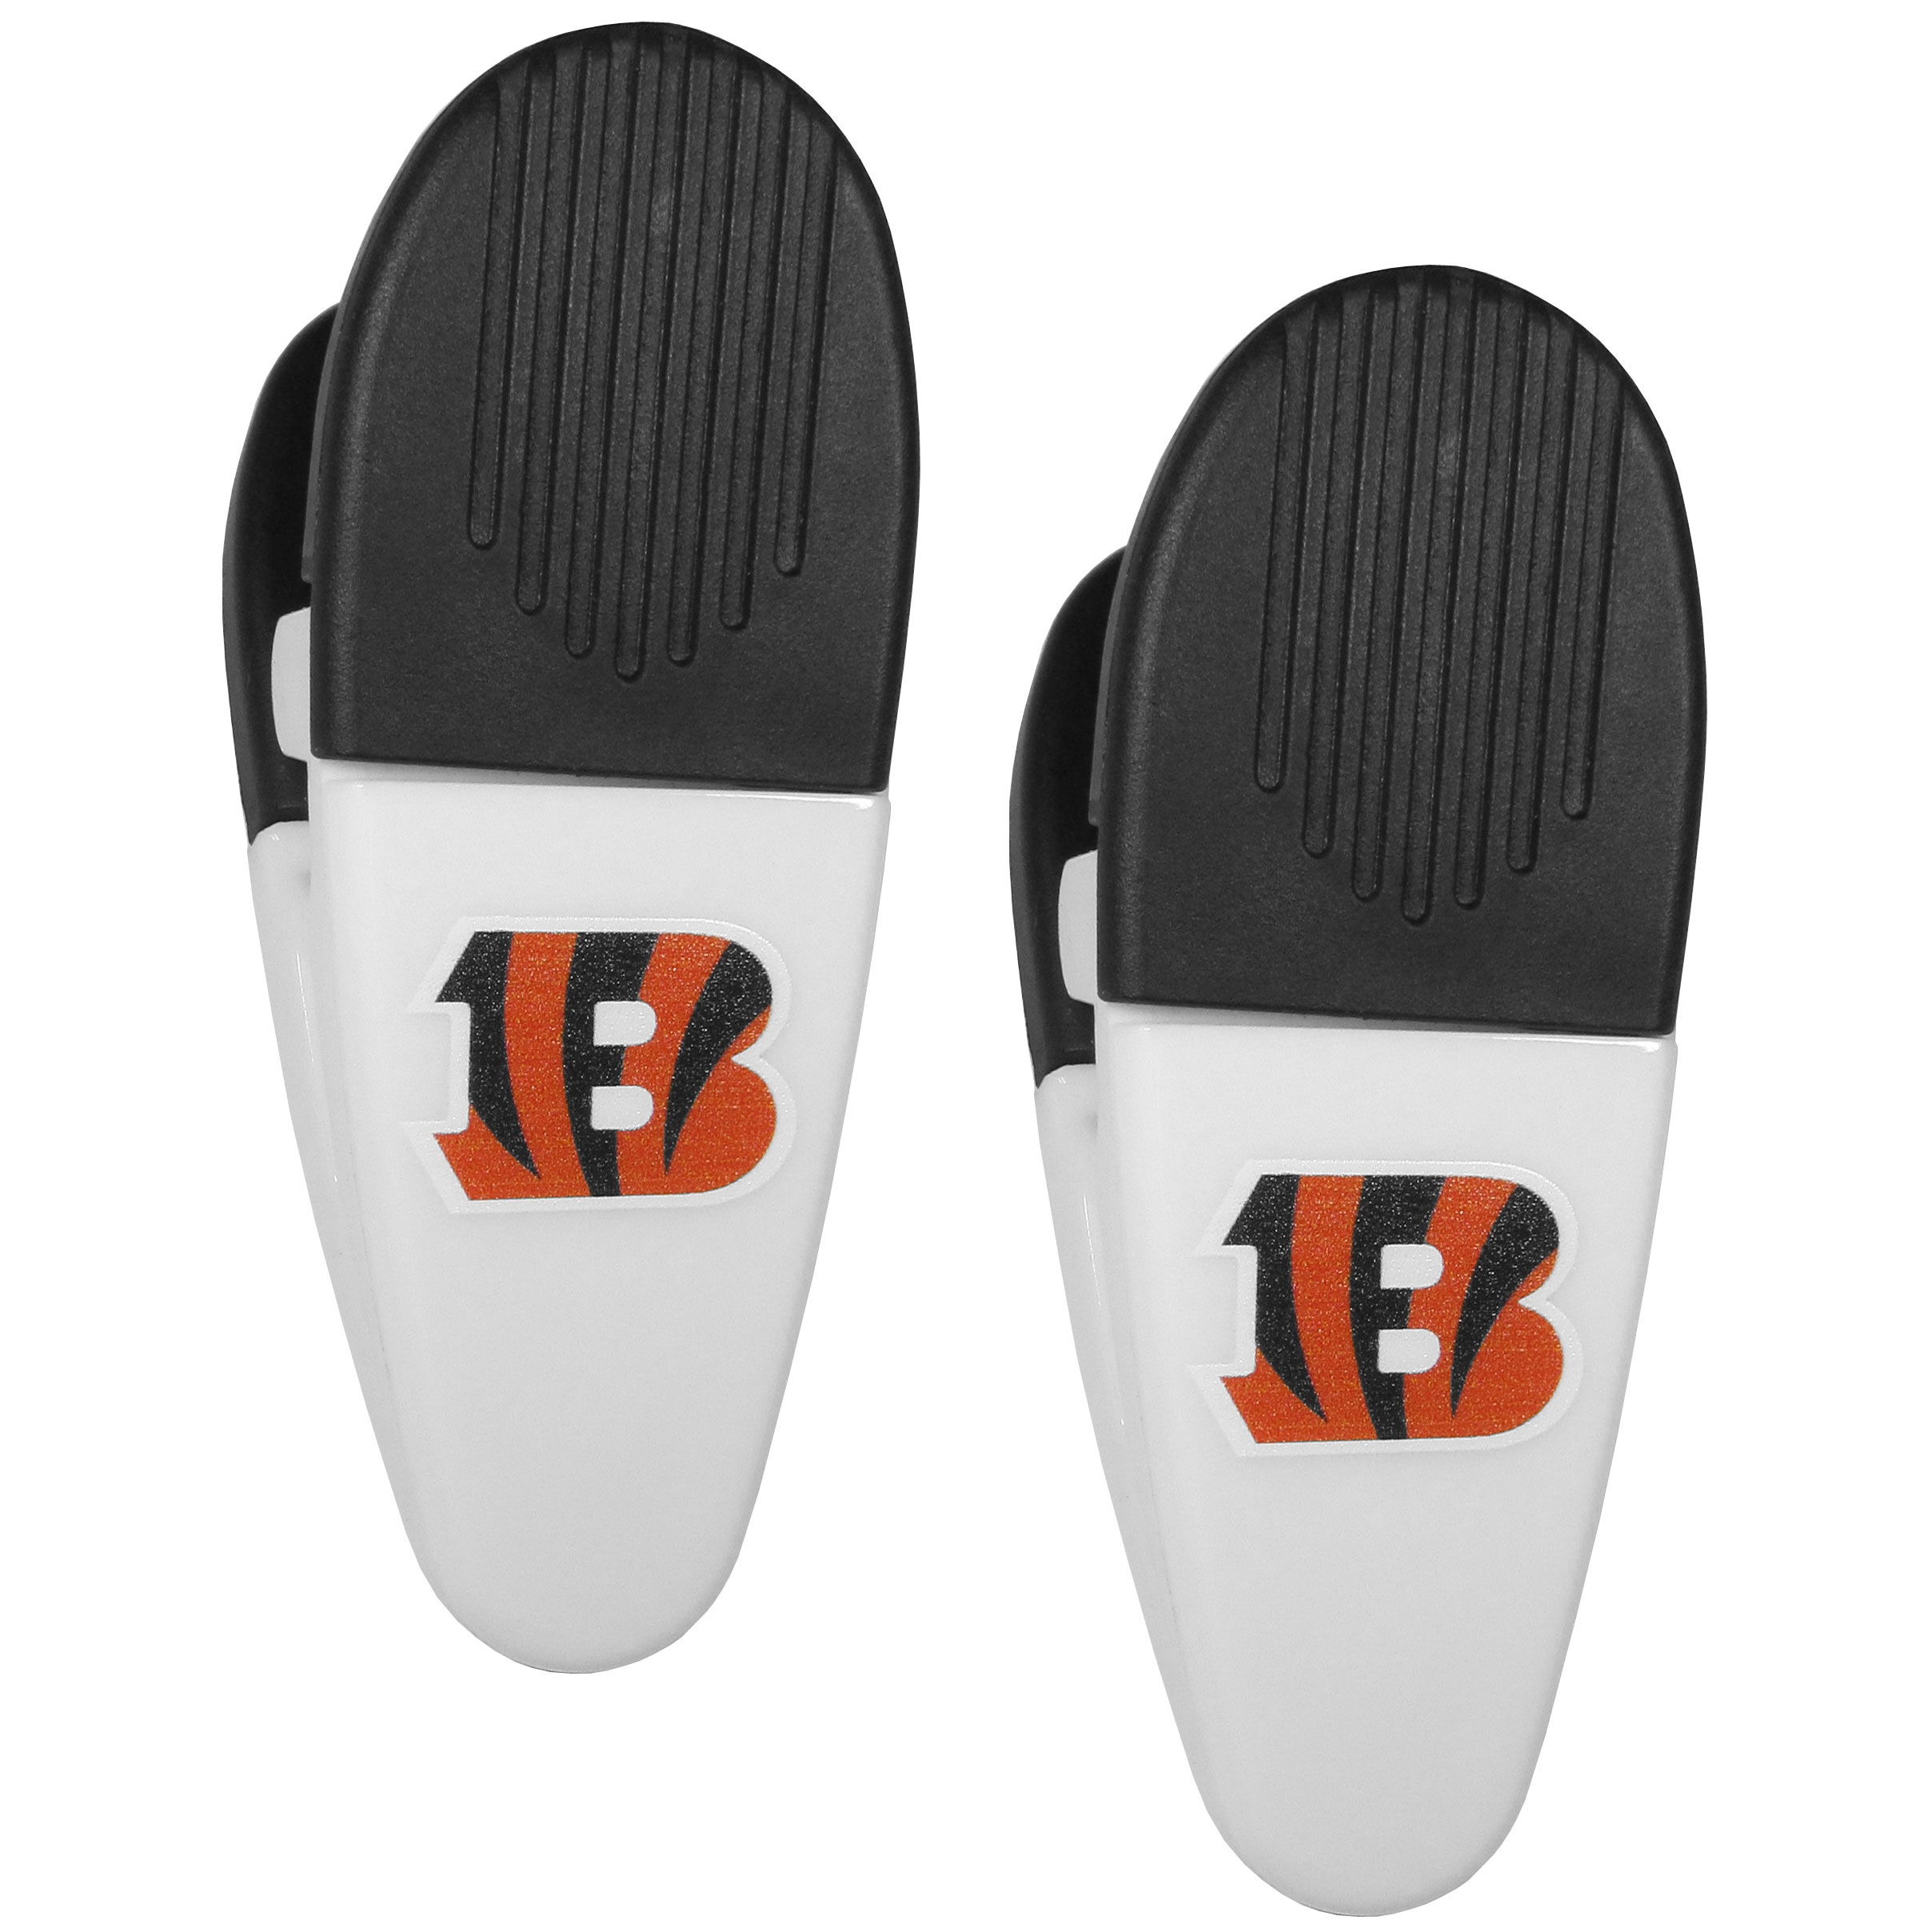 Cincinnati Bengals Mini Chip Clip Magnets, 2 pk - Our Cincinnati Bengals chip clip magnets feature a crisp team logo on the front of the clip. The clip is perfect for sealing chips for freshness and with the powerful magnet on the back it can be used to attach notes to the fridge or hanging your child's artwork. Set of 2 magnet clips, each clip is 3.5 inches tall and 1.25 inch wide.